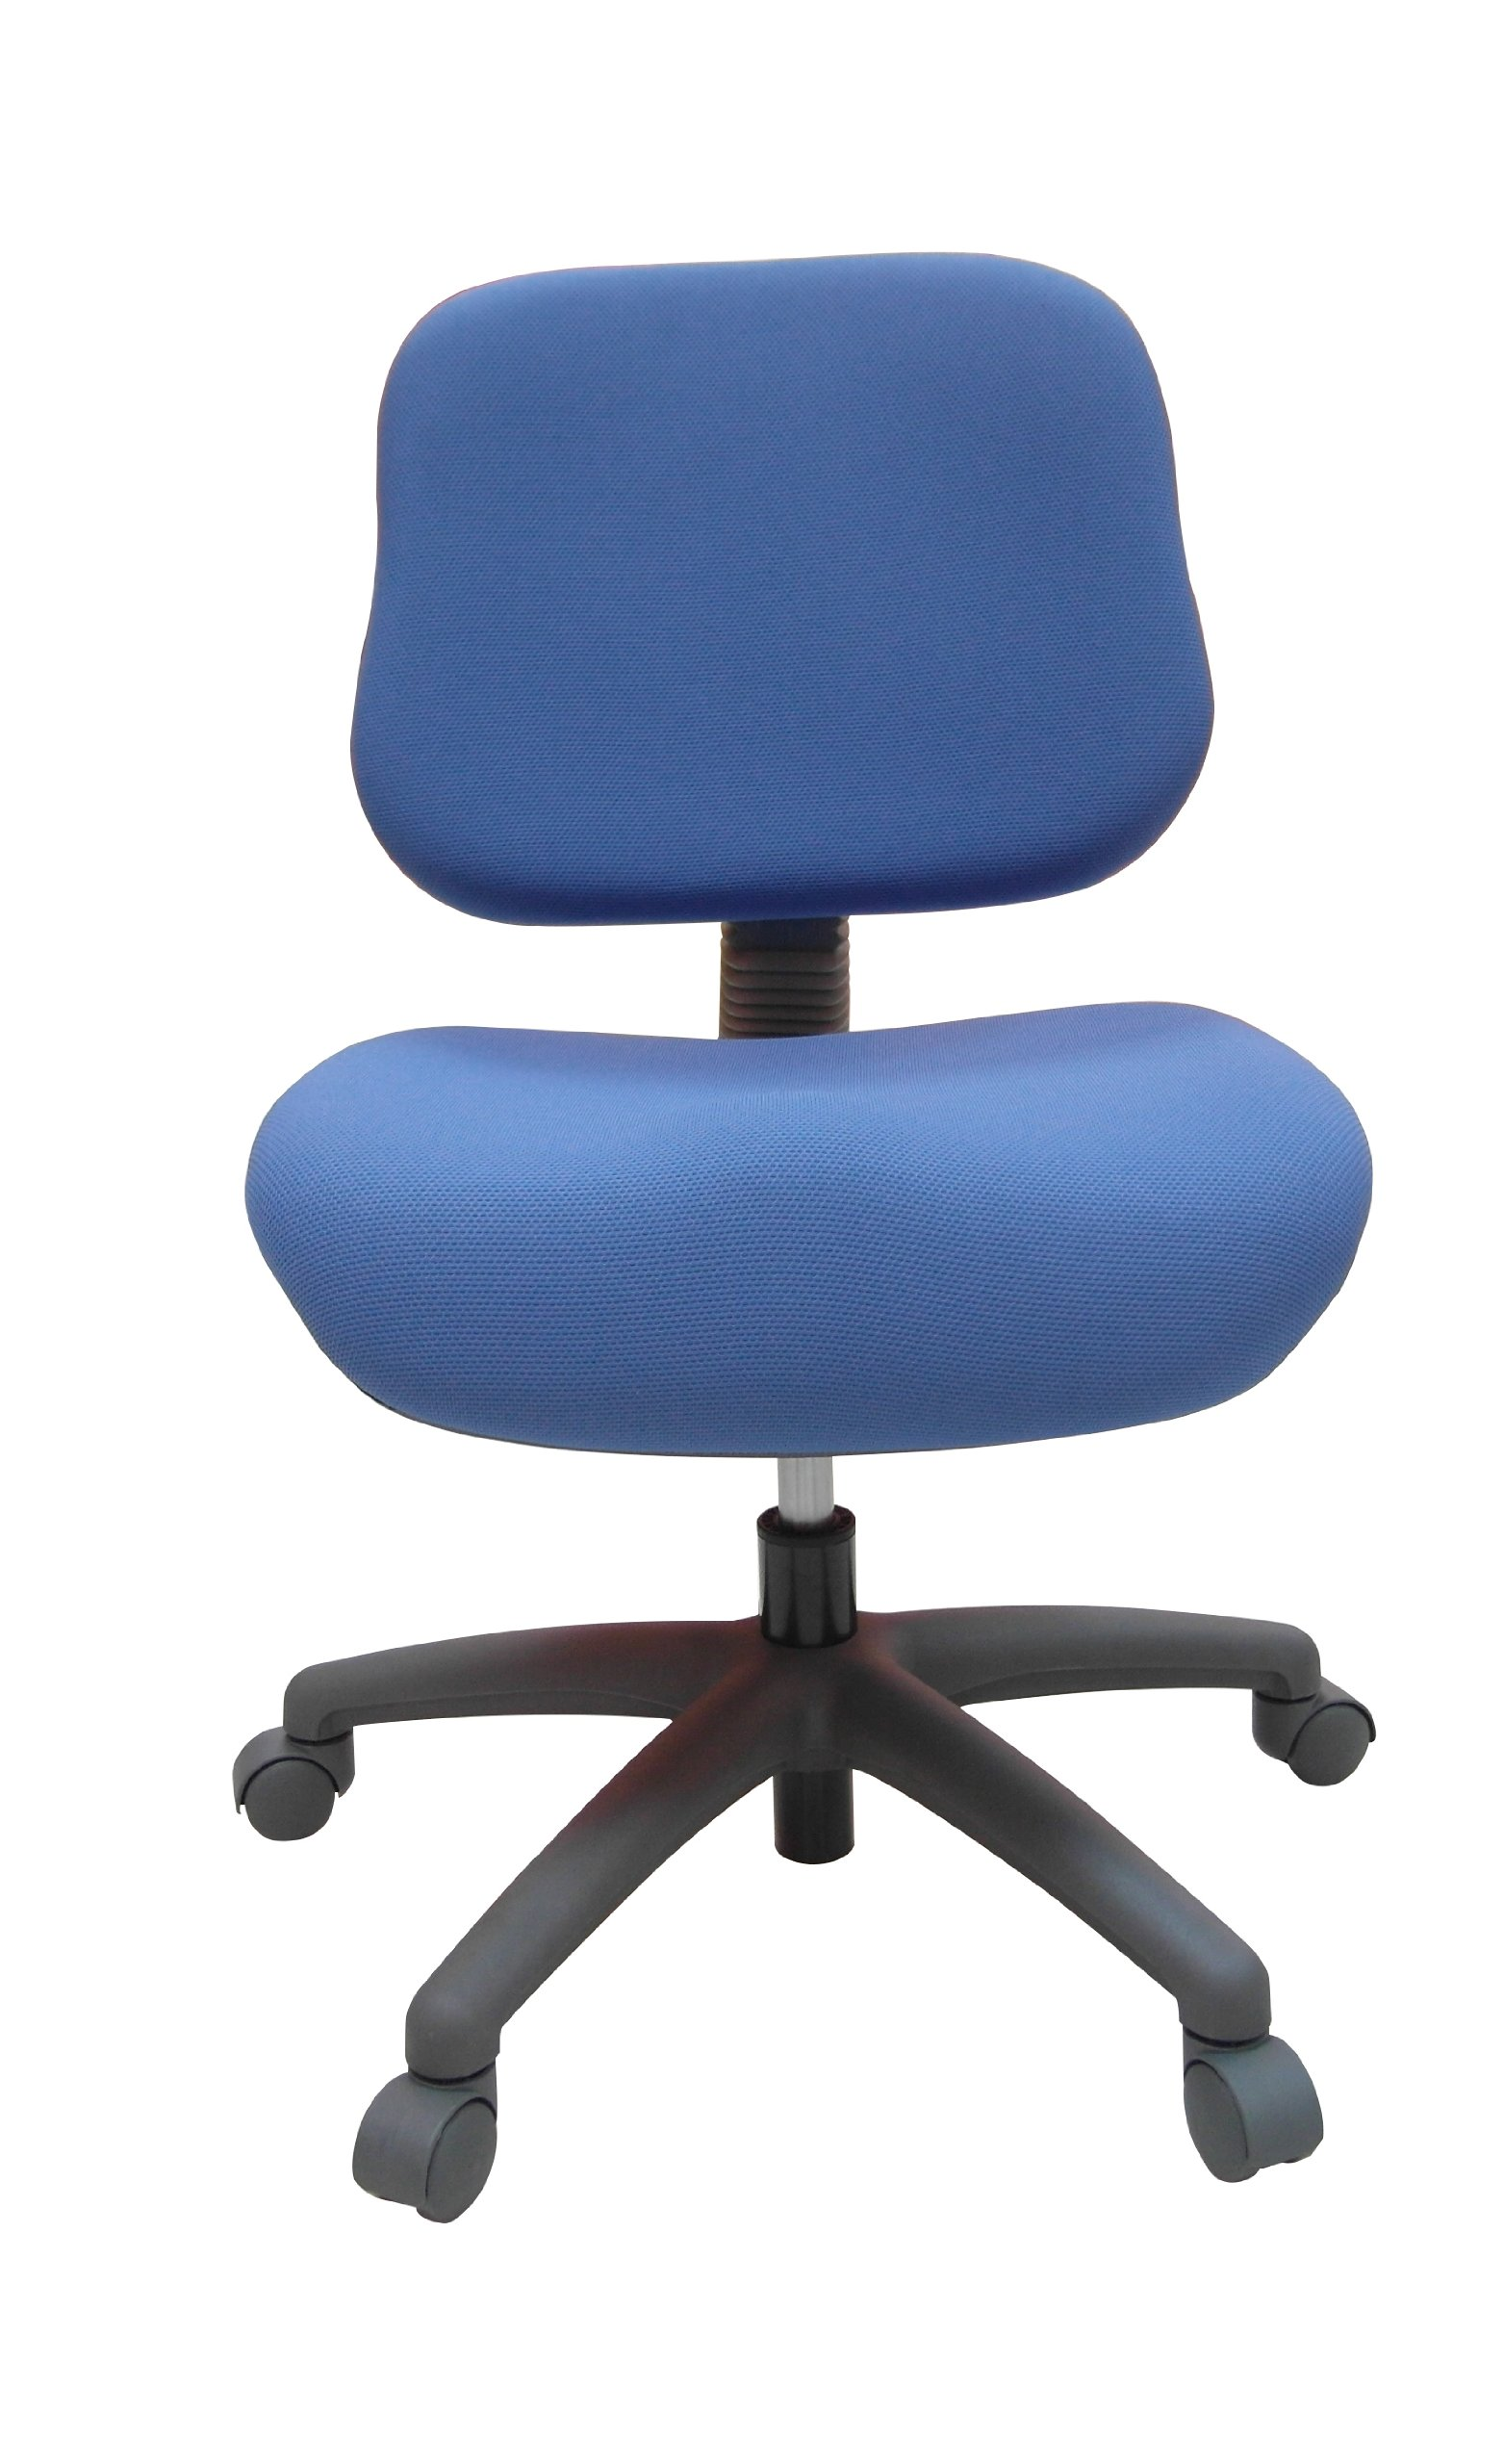 ORE International S-408BLU Youth Comfortable Adjustable Chair with Castors, Blue